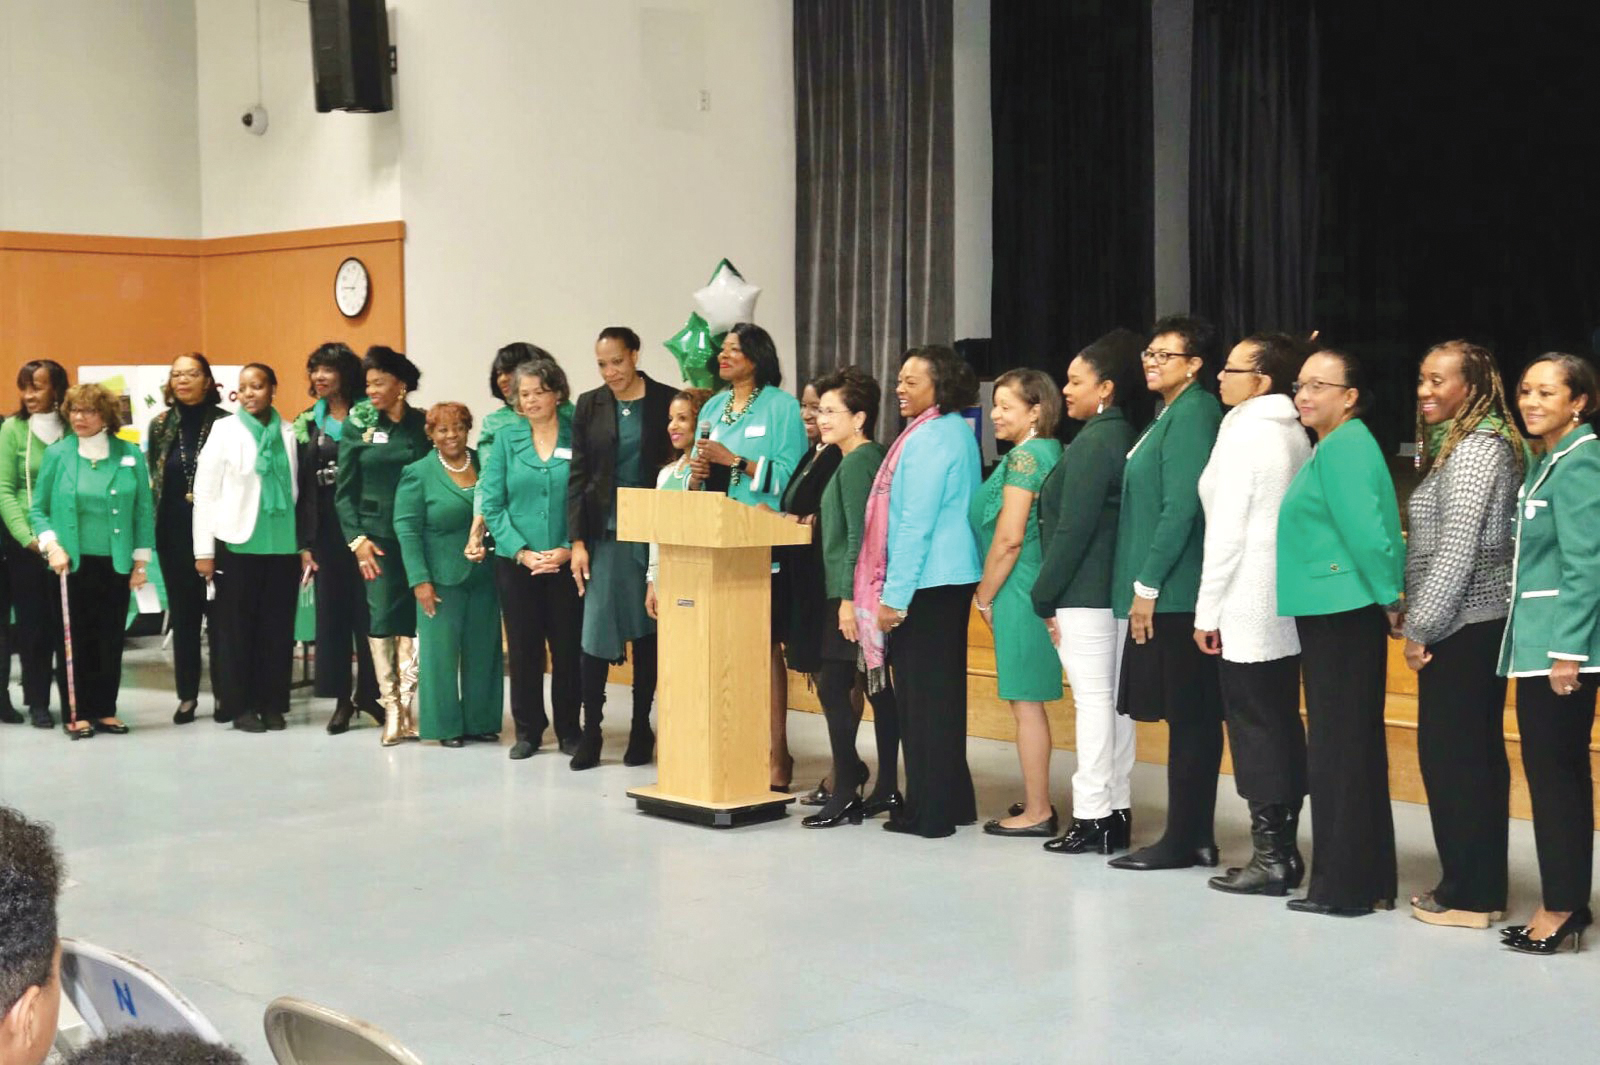 Mayor Karen Goh and members of The Links, Incorporated-pictured from left to right is Gredell Davis, Mary Tomlin, Ida Randall Richardson, Wangari Kihoro, Olivia Washington, Denise Norris, Essie Davis, Debra Strong, Zadie Hurd, Dena Freeman Patton, Michelle Shannon, Michele Burris, Odella Johnson, Mayor Karen Goh, Adrienne Konigar Macklin, Esq., Nancy Hill, Addonica Stanley, Jeanie Hill, Yolanda Harris, Karen Nealy, Dr. Stephany Powell, and Tammy Brown.